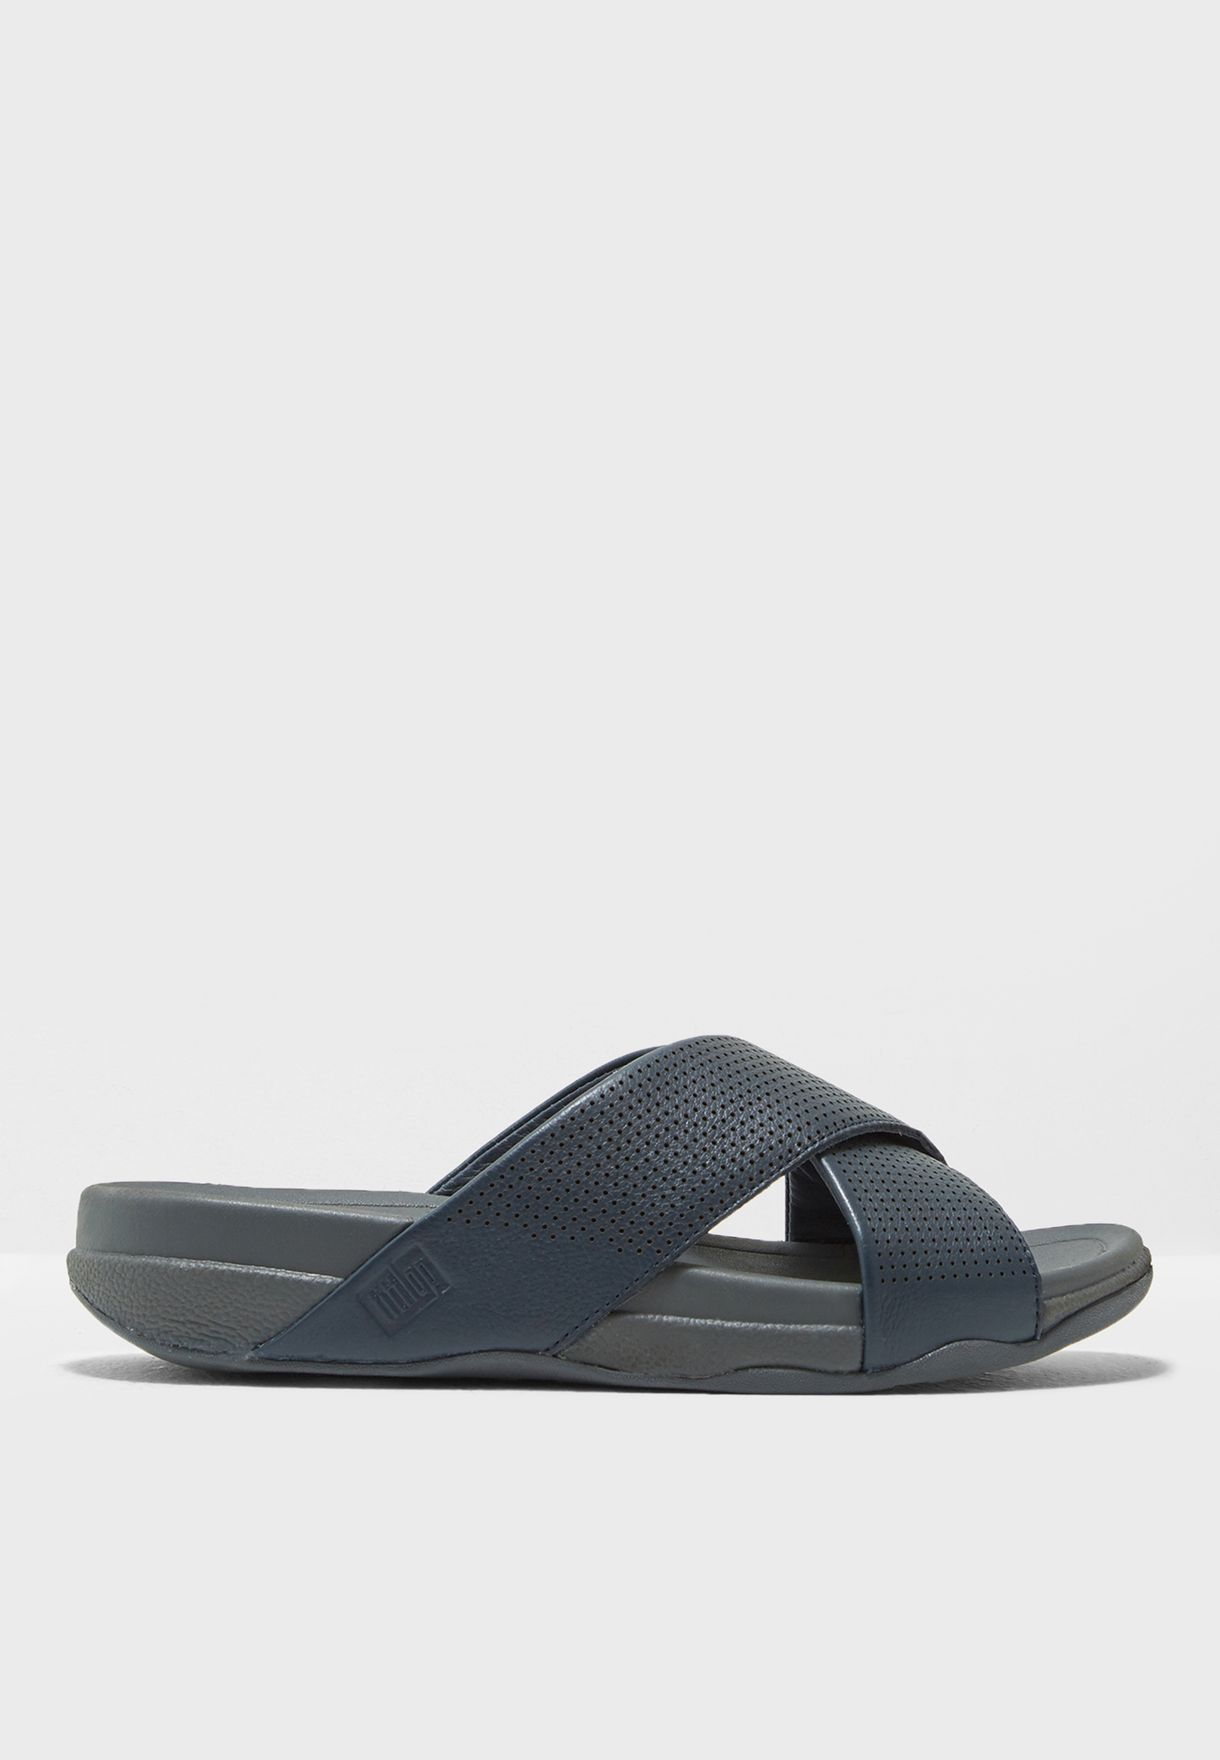 085903f30 Shop Fitflop navy Surfer Slide In Perforated Leather - Urban Grey ...